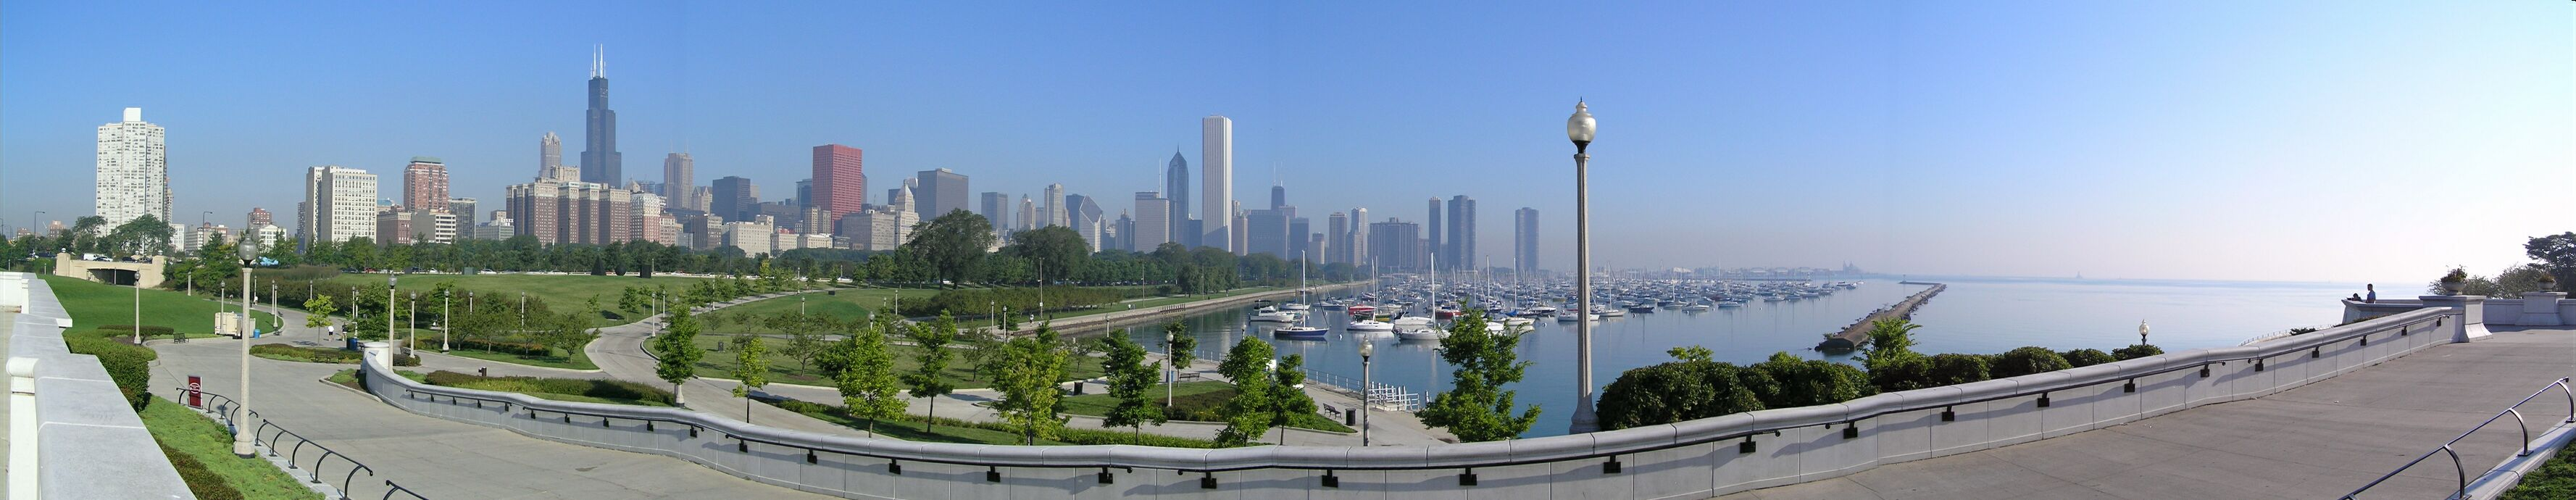 File:Chicago Downtown Panorama.jpg - Wikipedia, the free encyclopedia